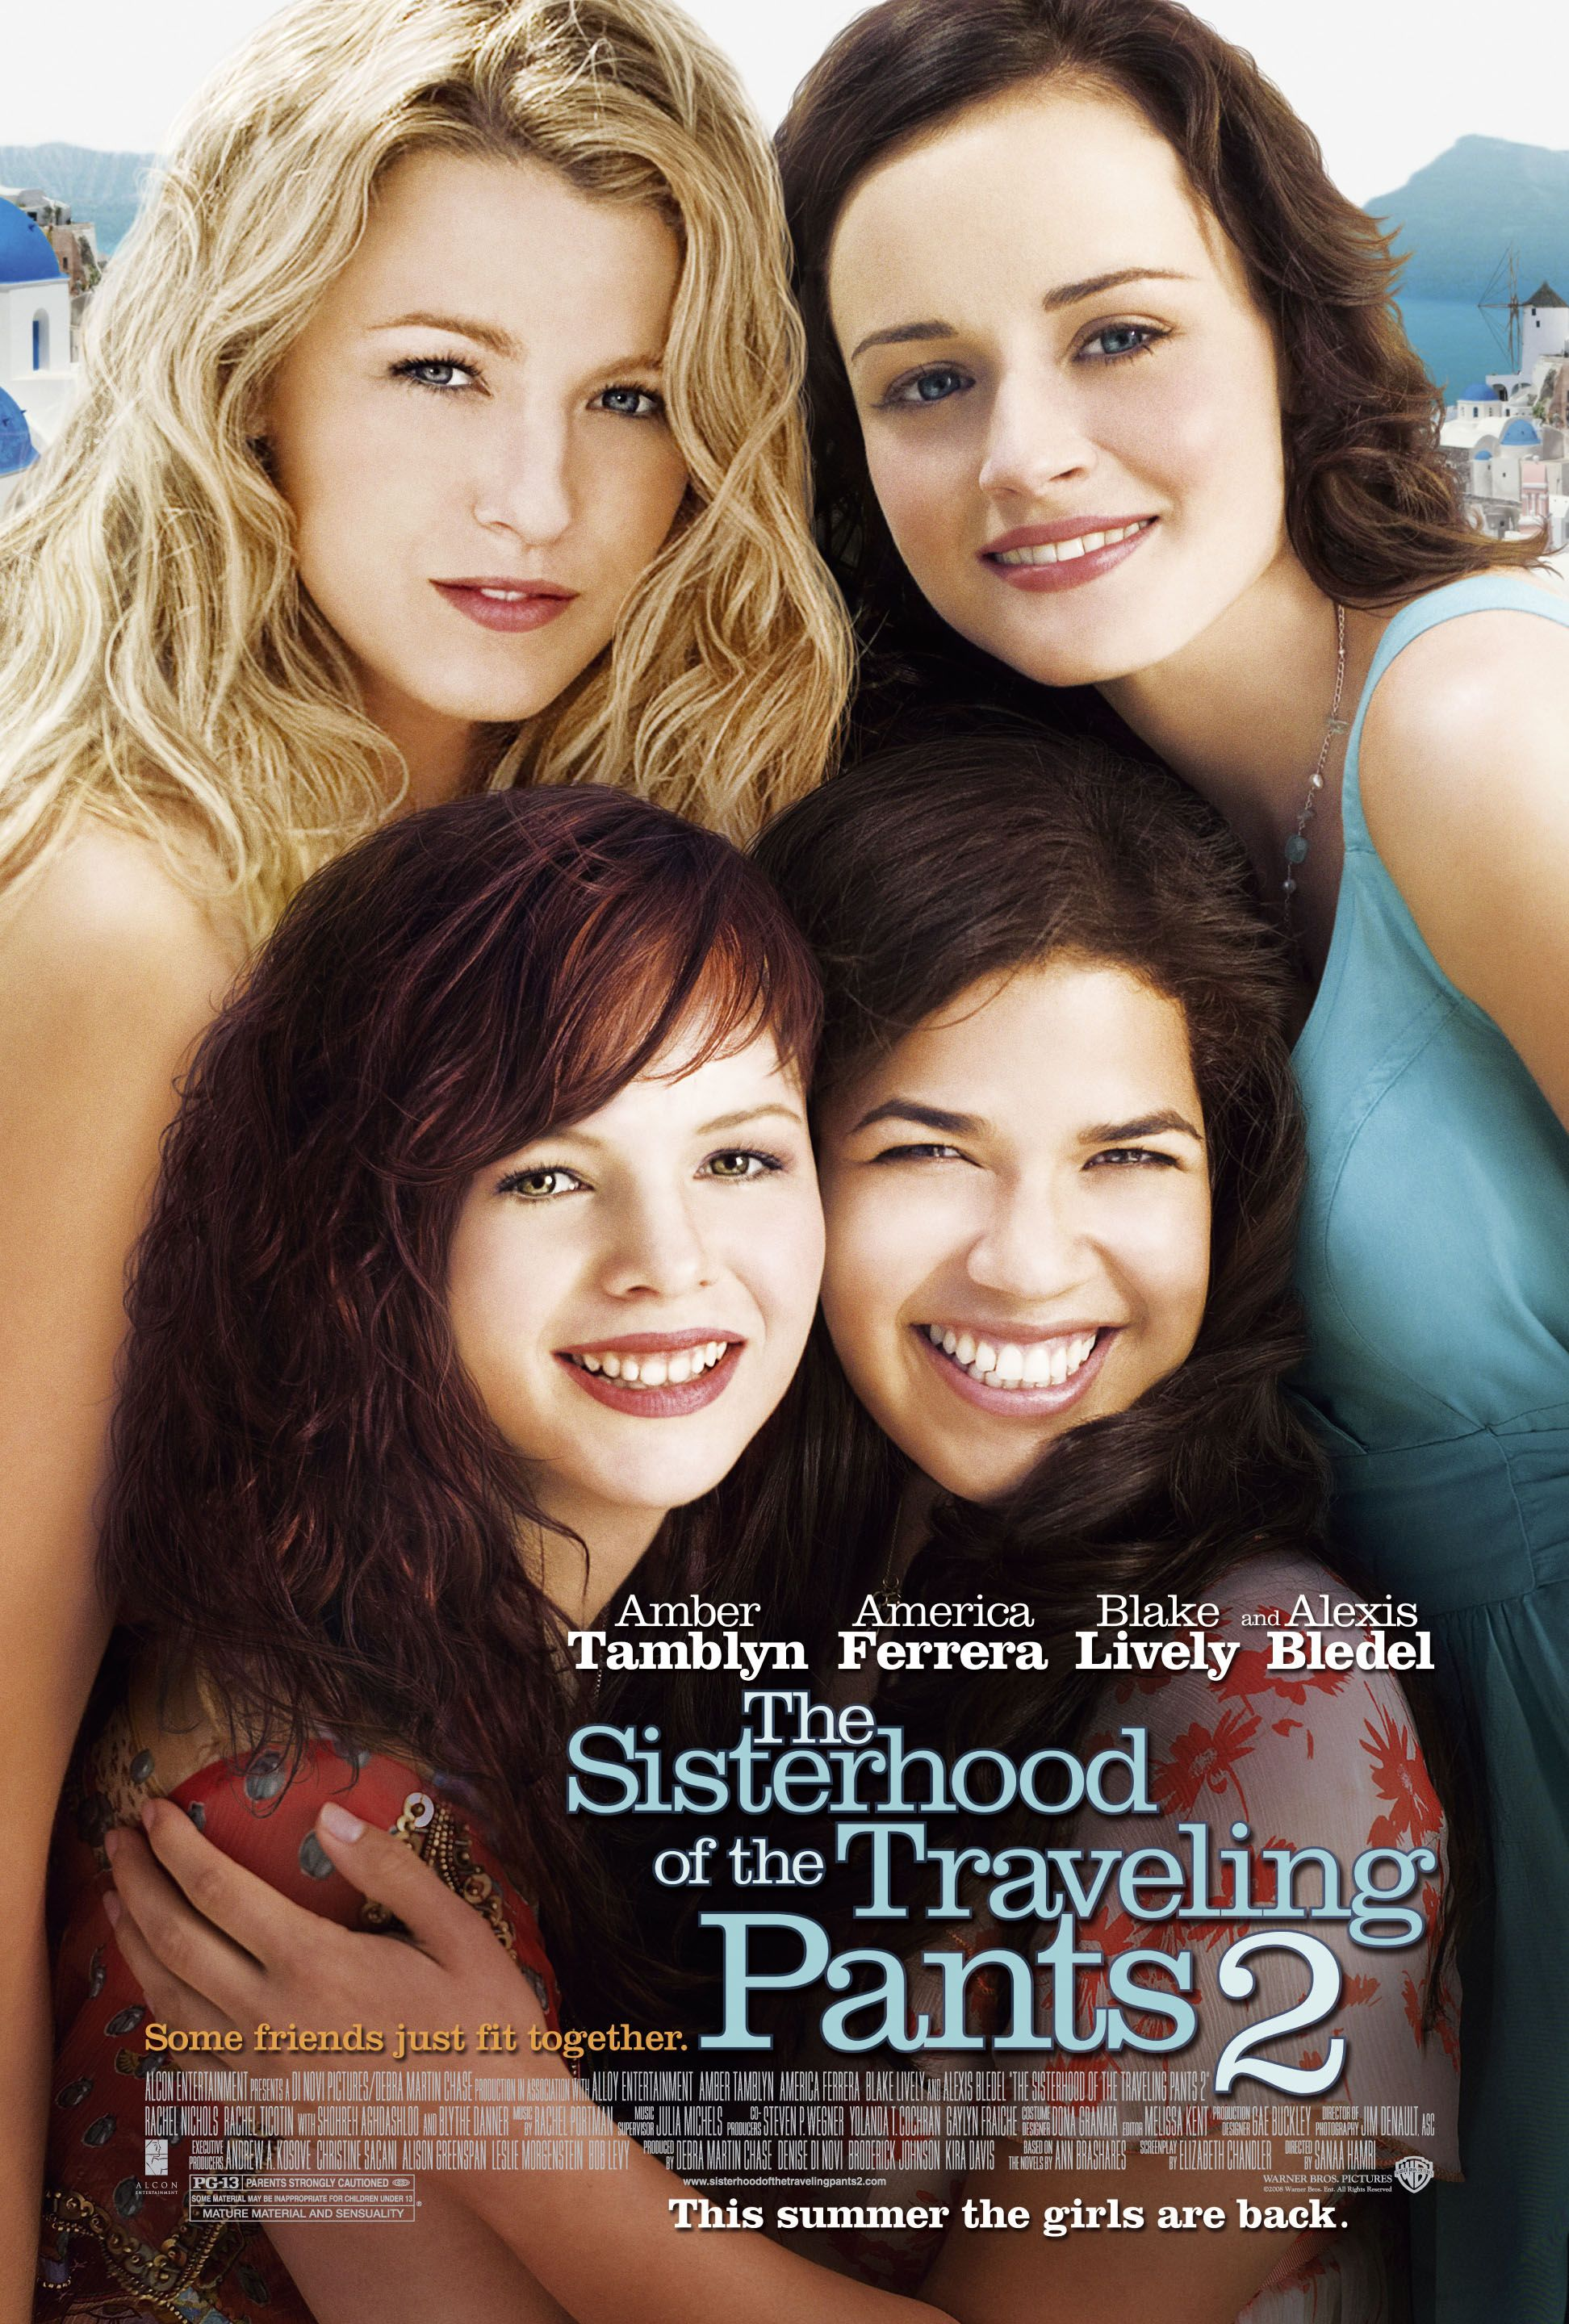 Sisterhood Of The Traveling Pants Quotes About Friendship Sisterhood Of The Travelling Pants 2  Now Showing. Pinterest